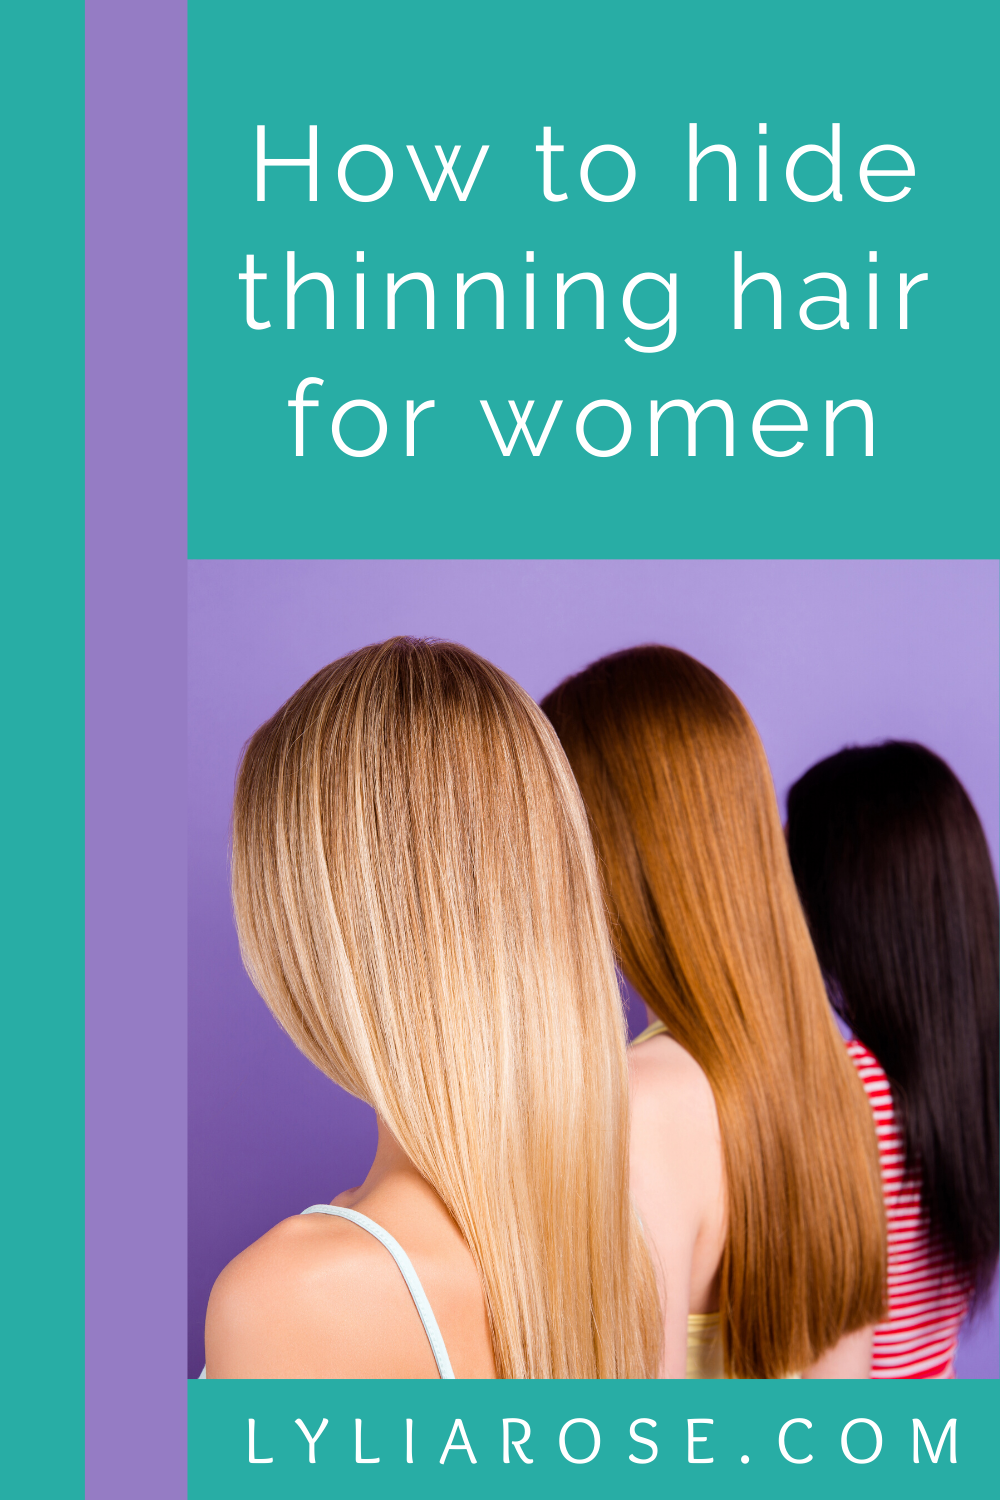 How to hide thinning hair for women